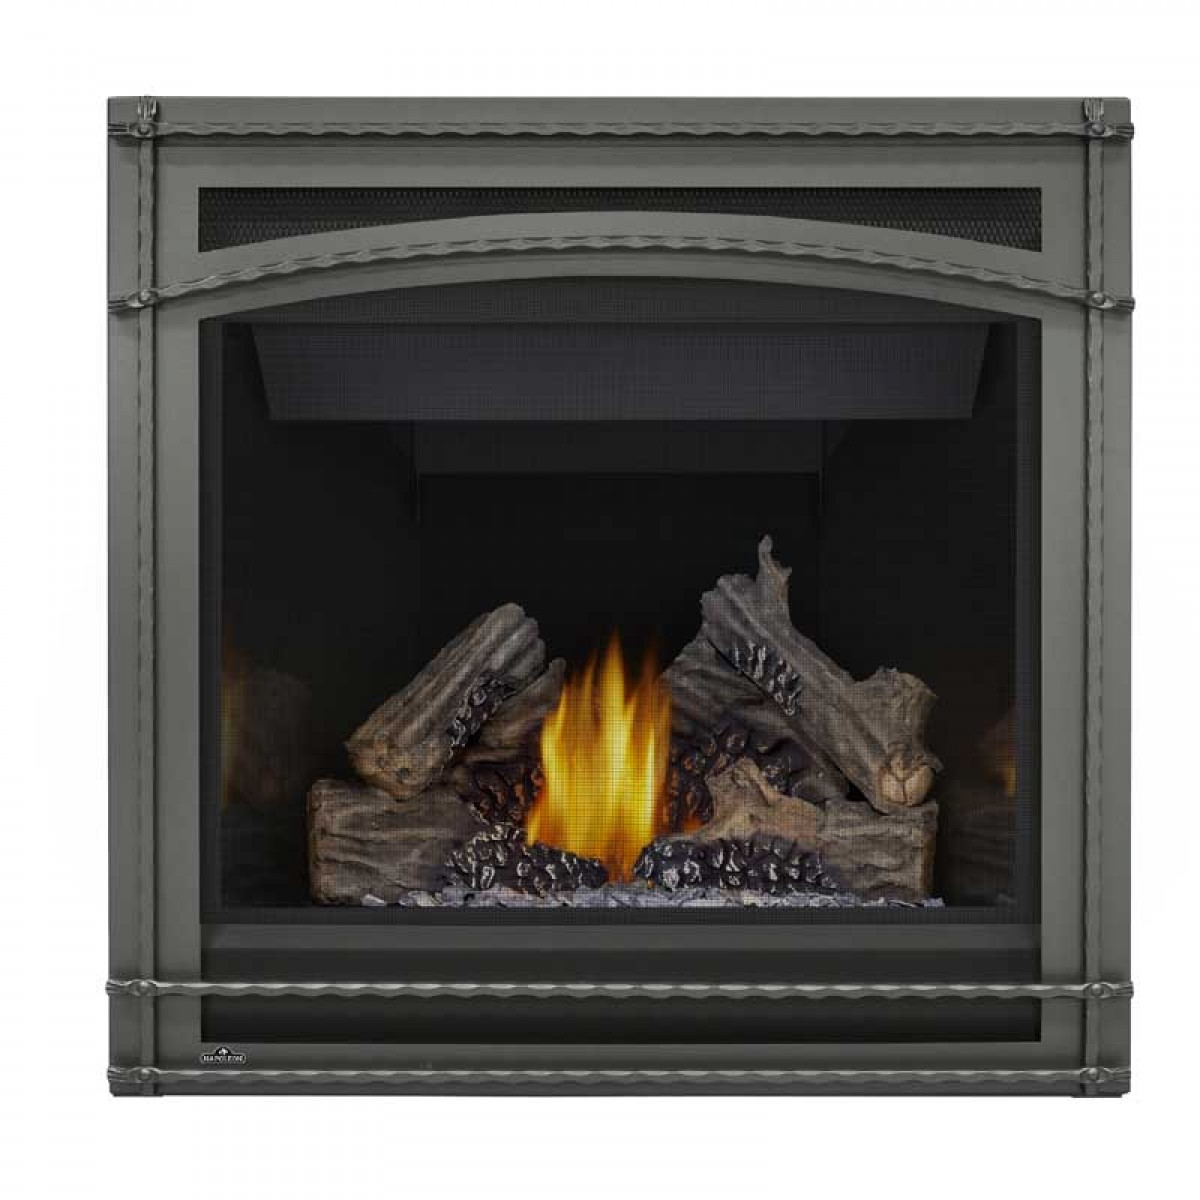 Napoleon ascent 36 direct vent gas fireplace for Fireplace options